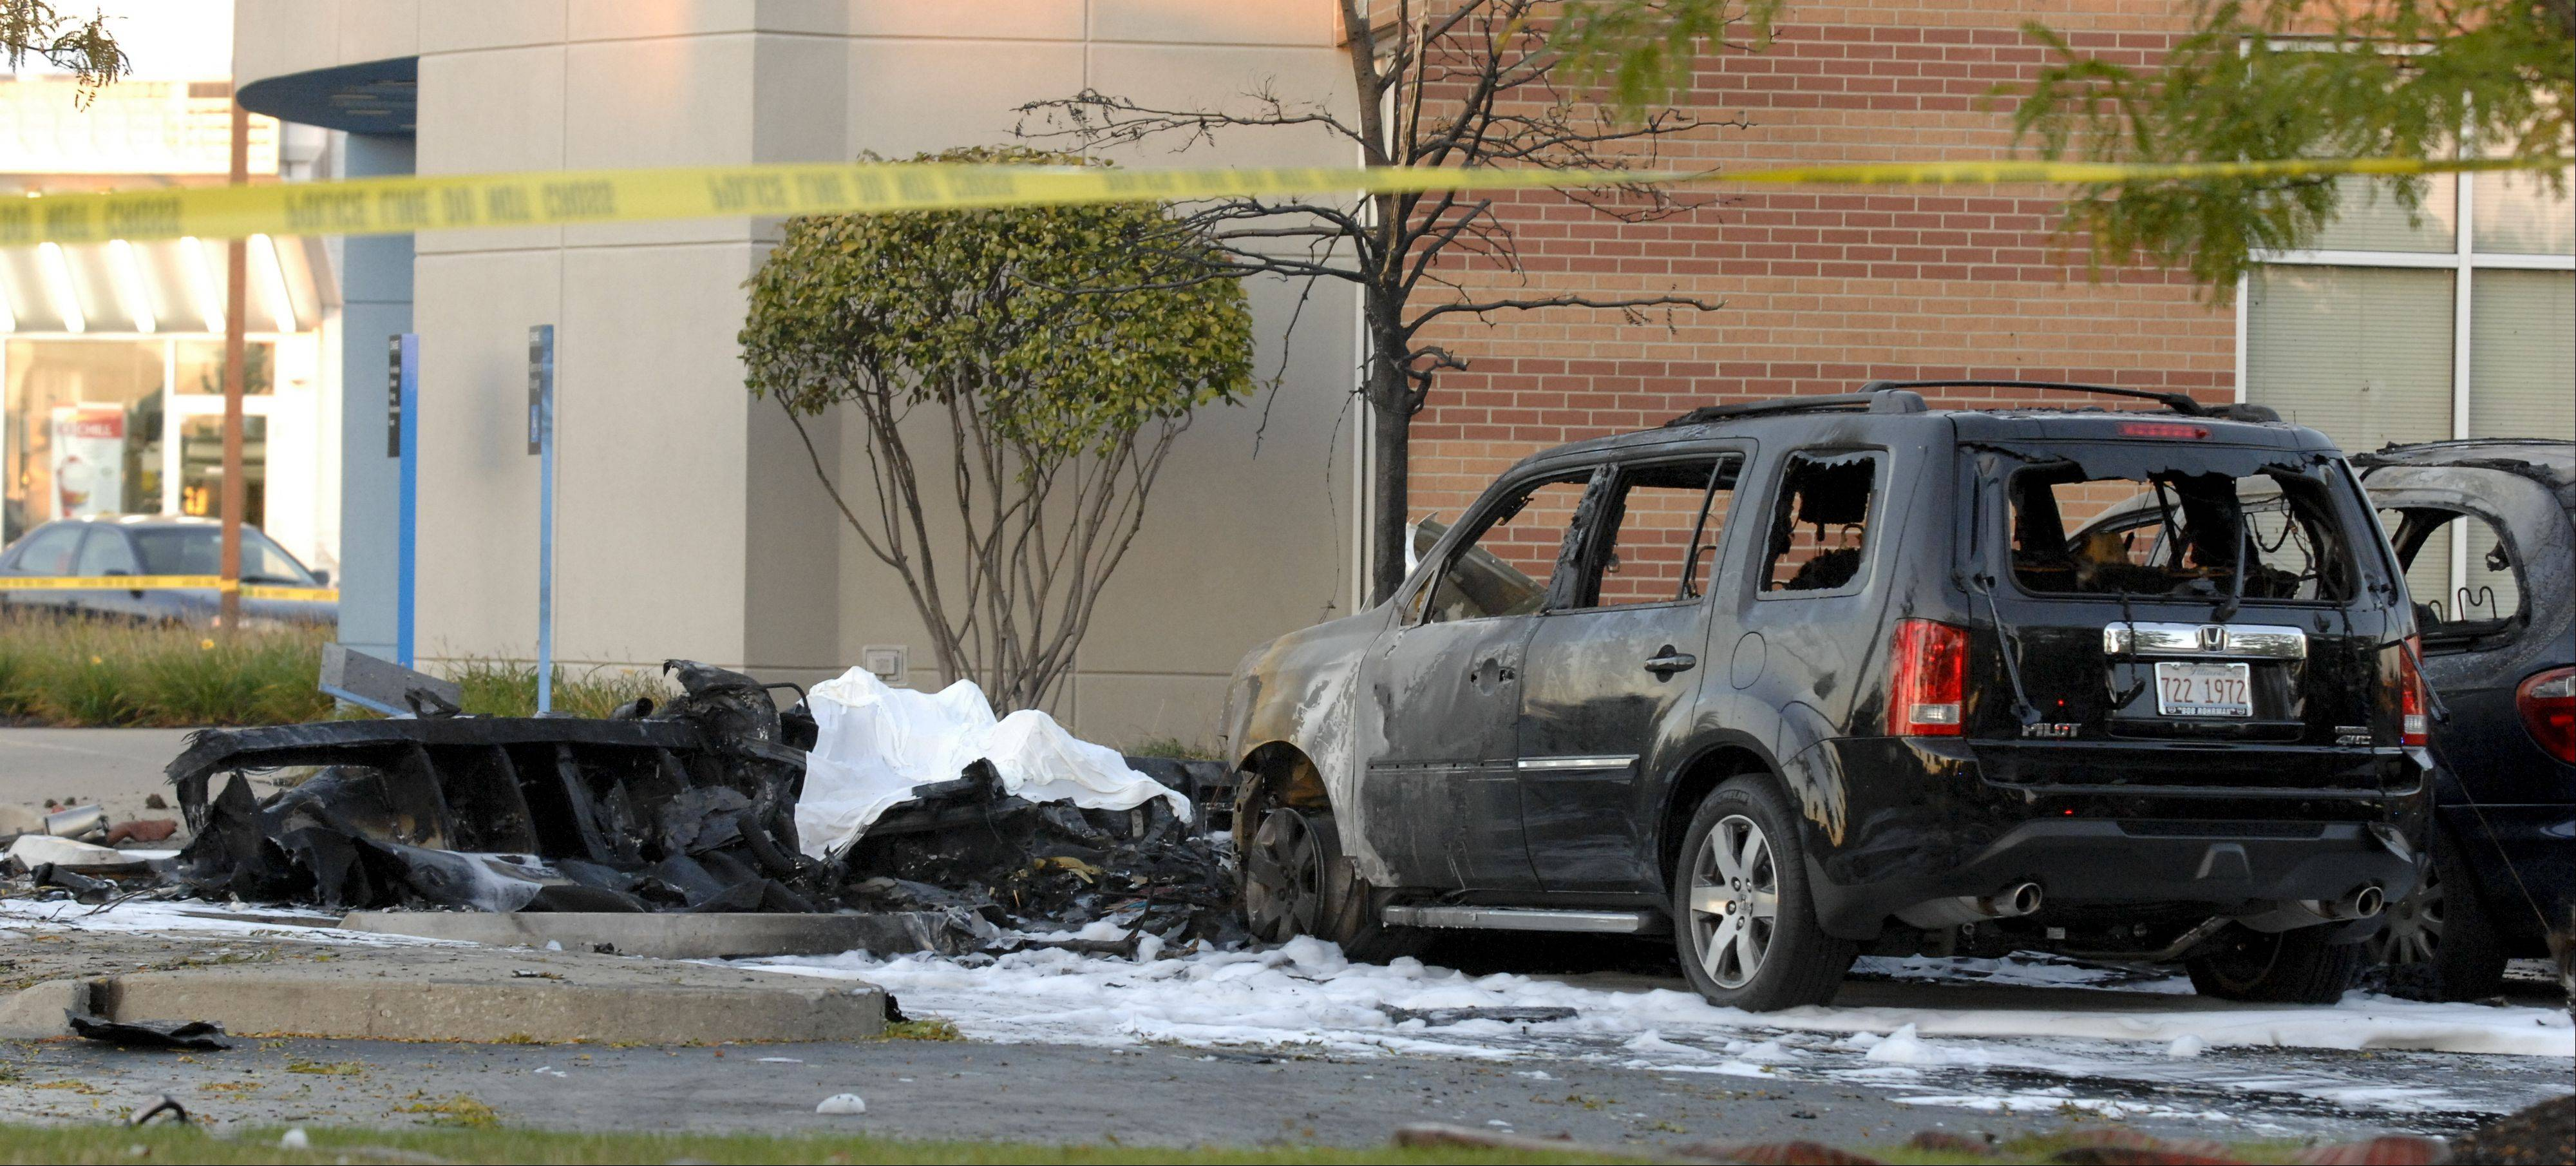 Investigators examine the site of a plane crash Wednesday in the parking lot of a Chase bank on Weber Road near the Clow International Airport in Bolingbrook.